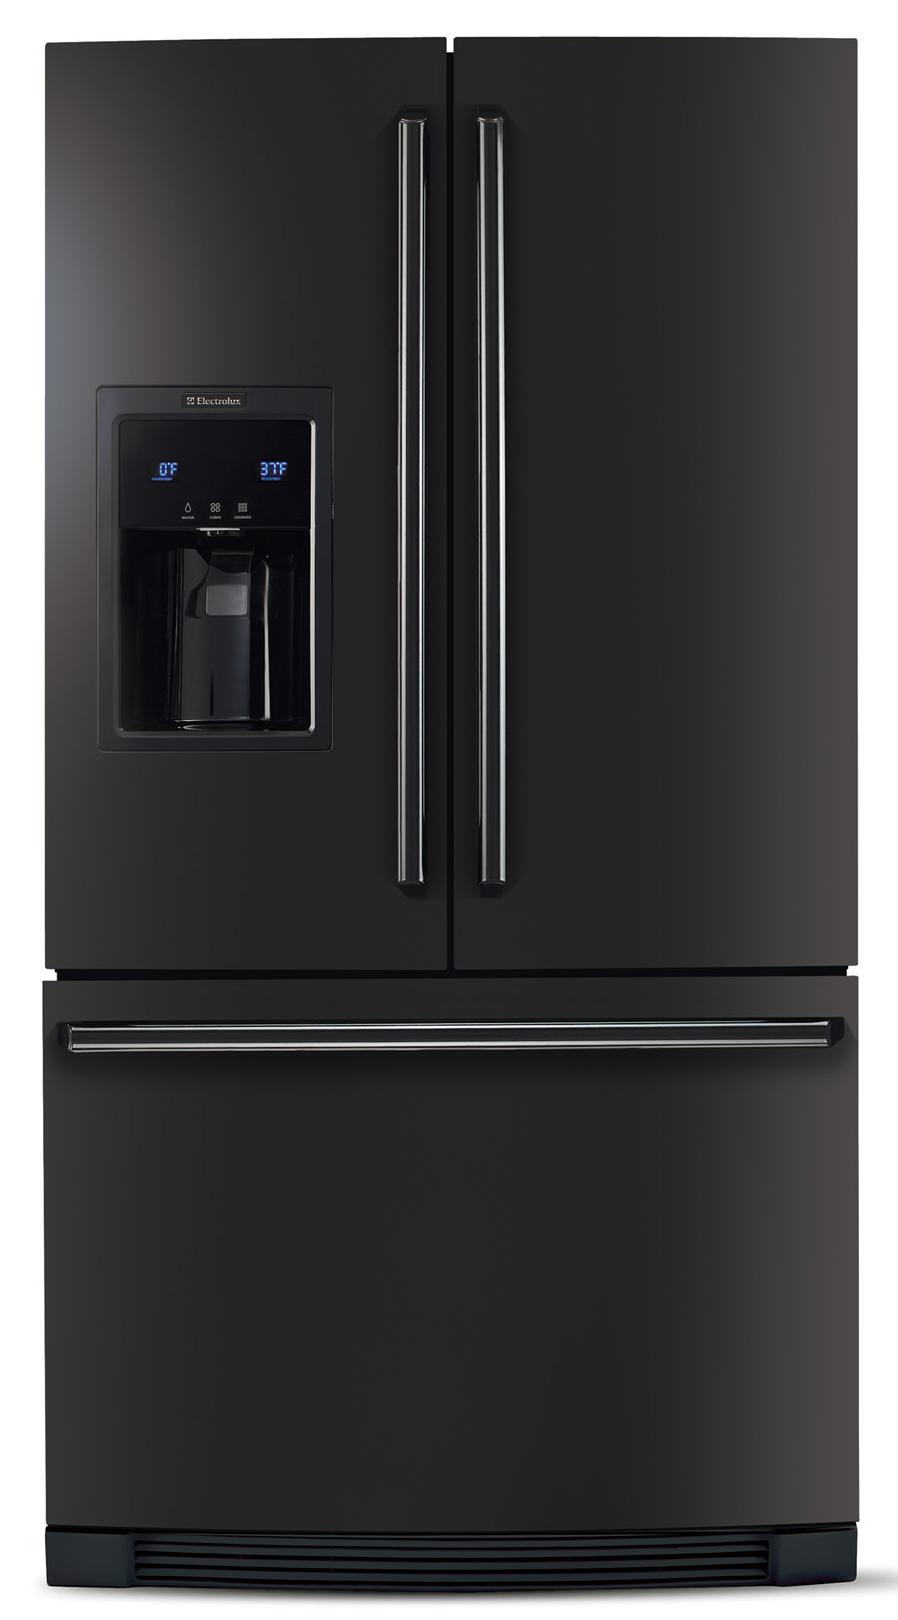 Images of Electrolux Wave Touch French Door Refrigerator